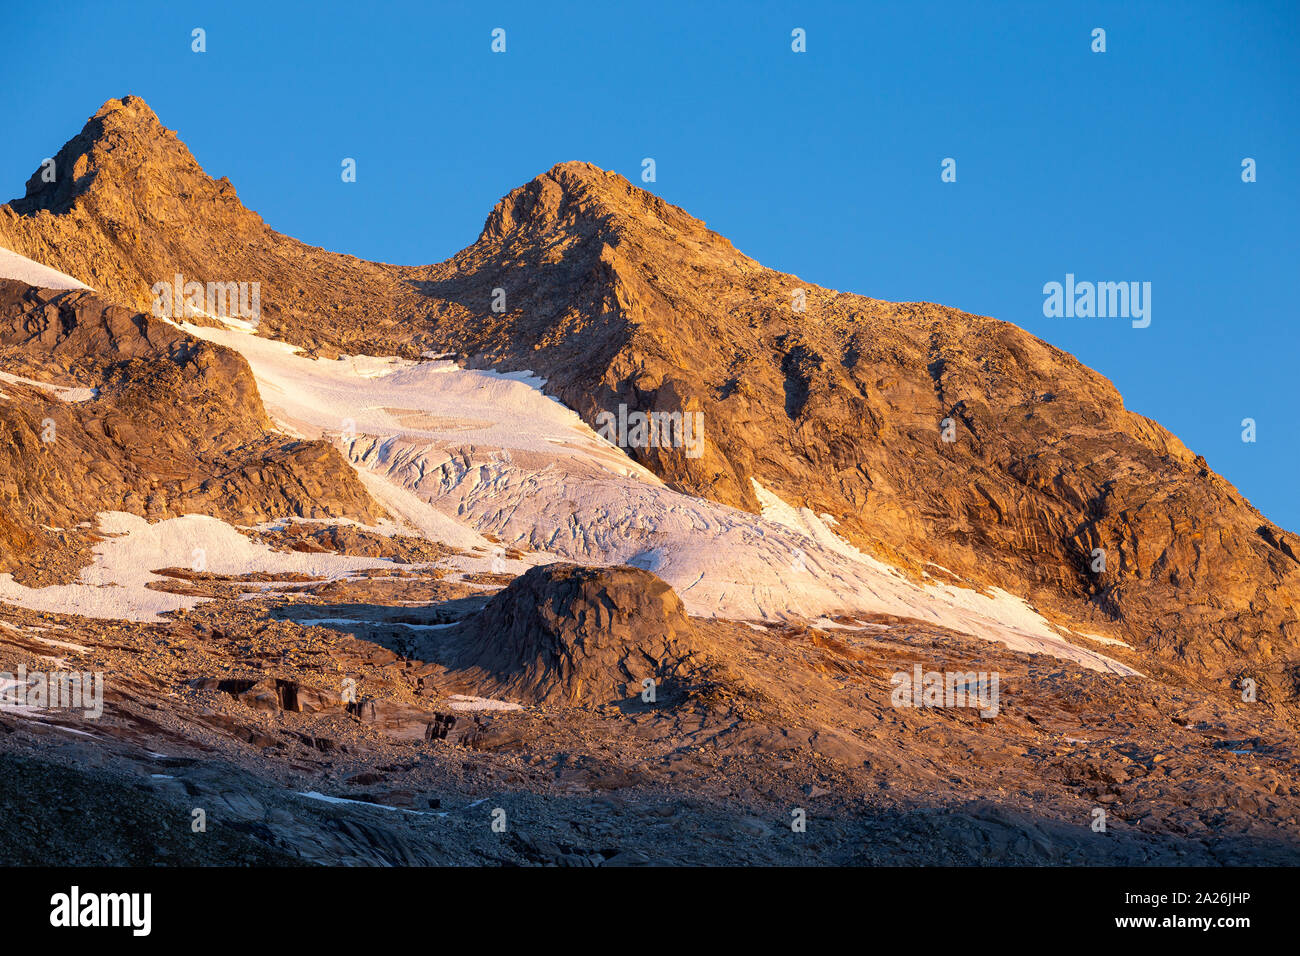 Reichenspitzgruppe. Reichenspitze peak. Sunrise sunlight on peaks and glaciers. Zillertal Alps. Hohe Tauern National Park. Austrian Alps. Stock Photo